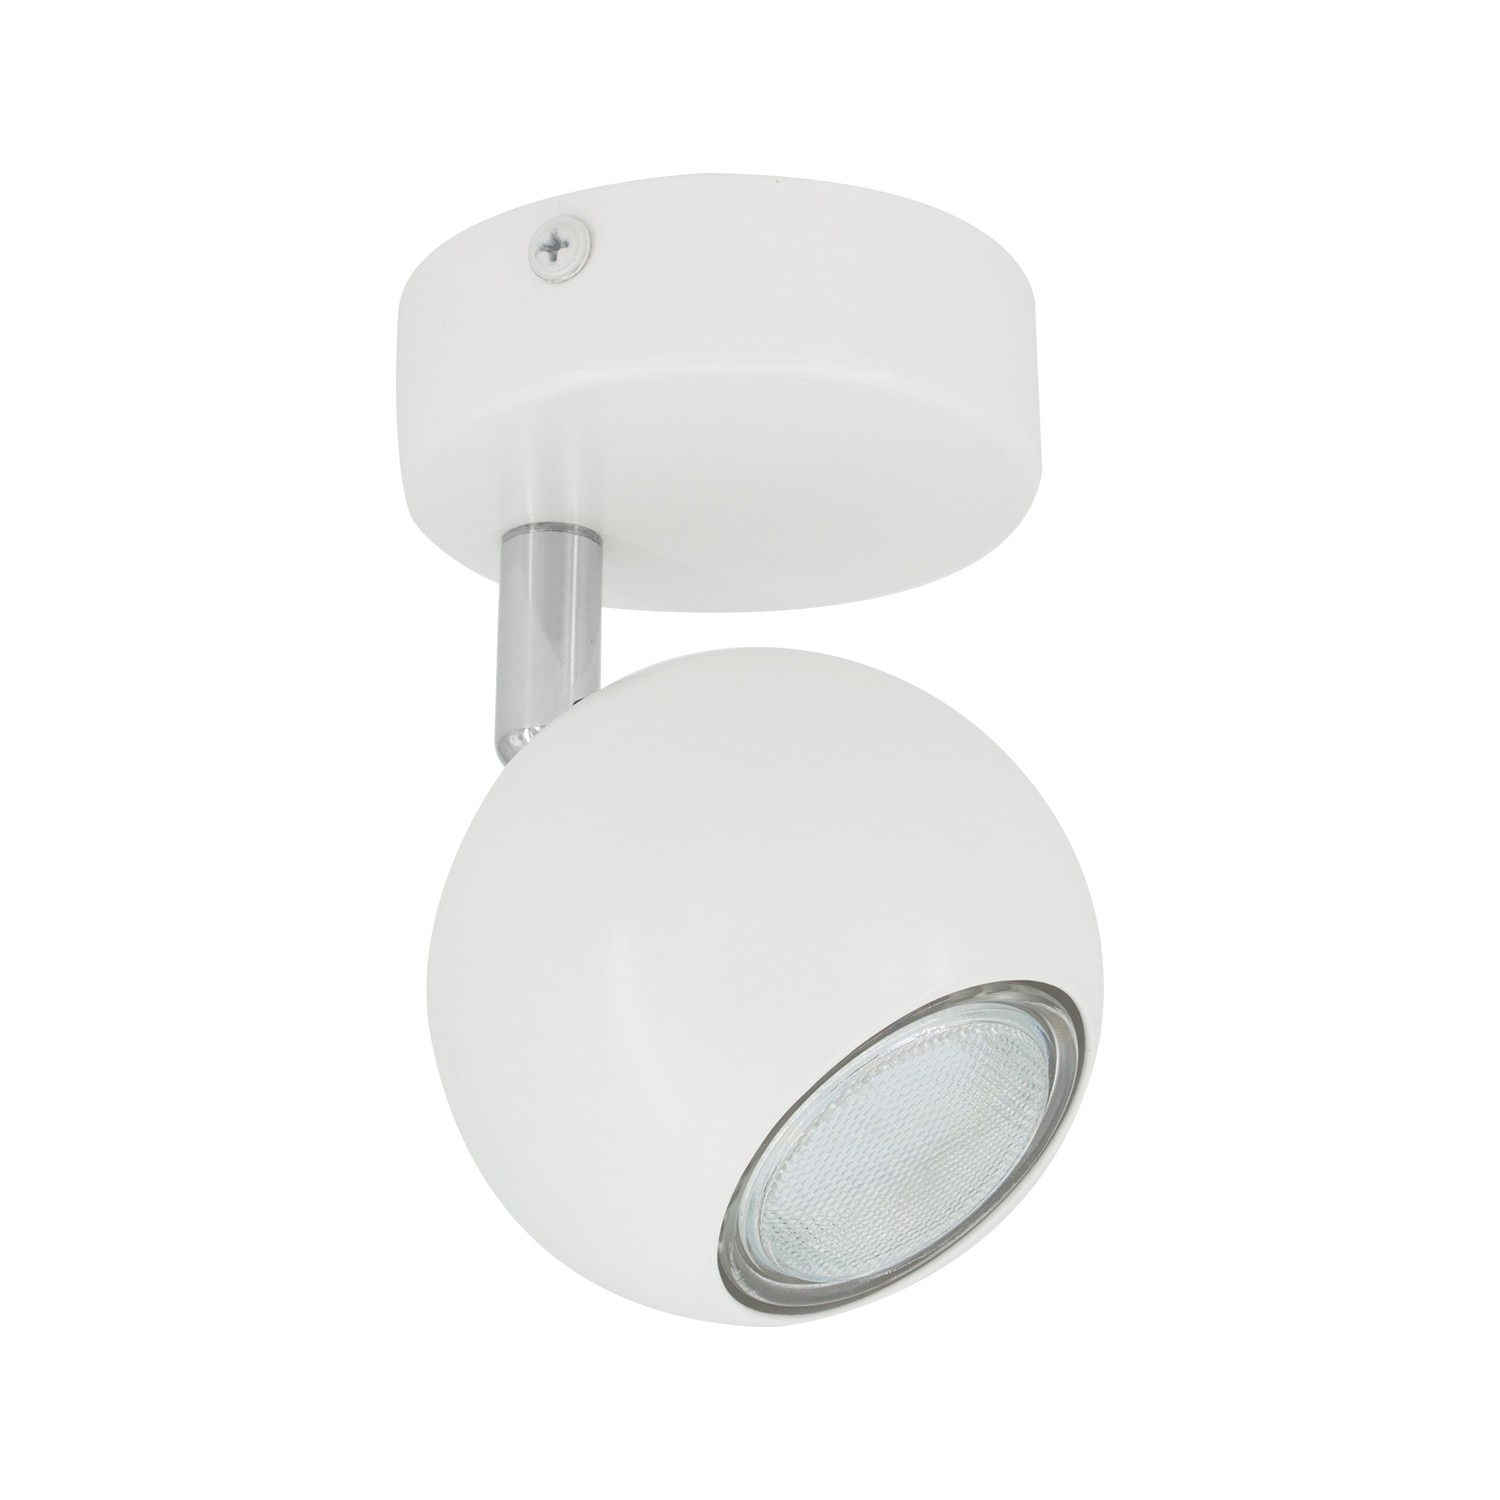 Applique Murale Gu10 Applique Murale Orientable Ates 1 Spot Blanc